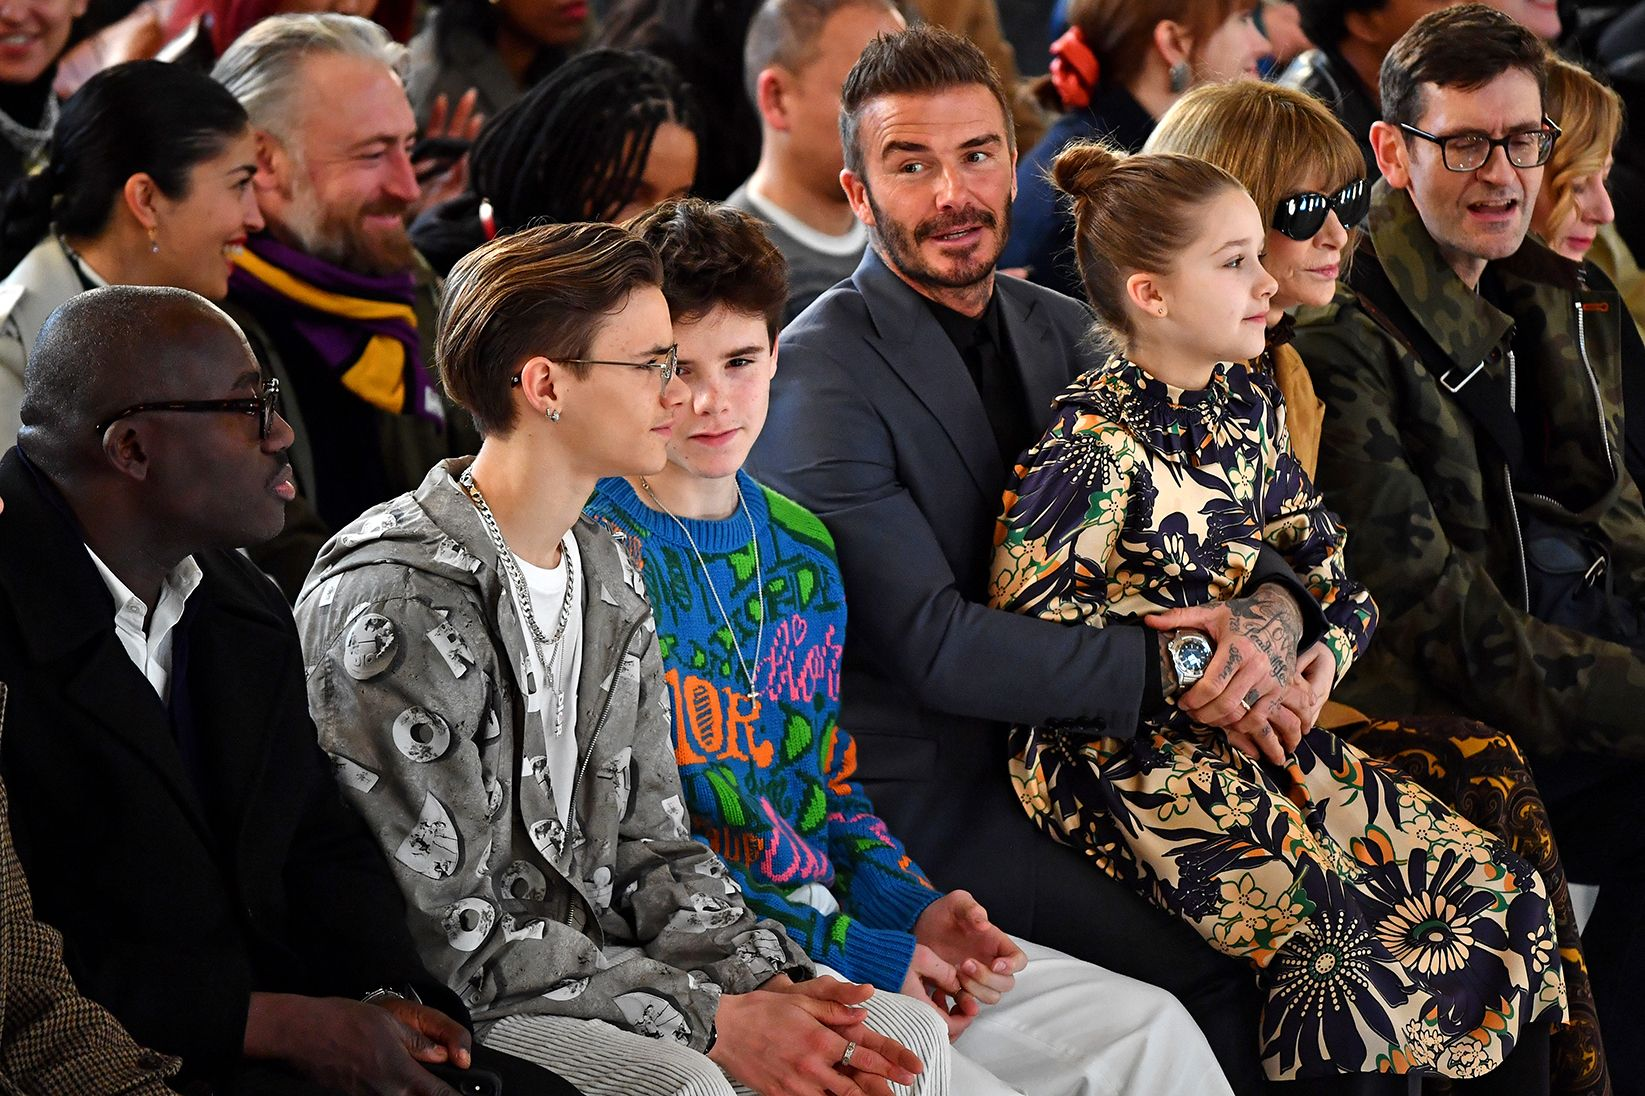 The Beckhams Managed To Hit Almost Every Shade Of Menswear At London Fashion Week